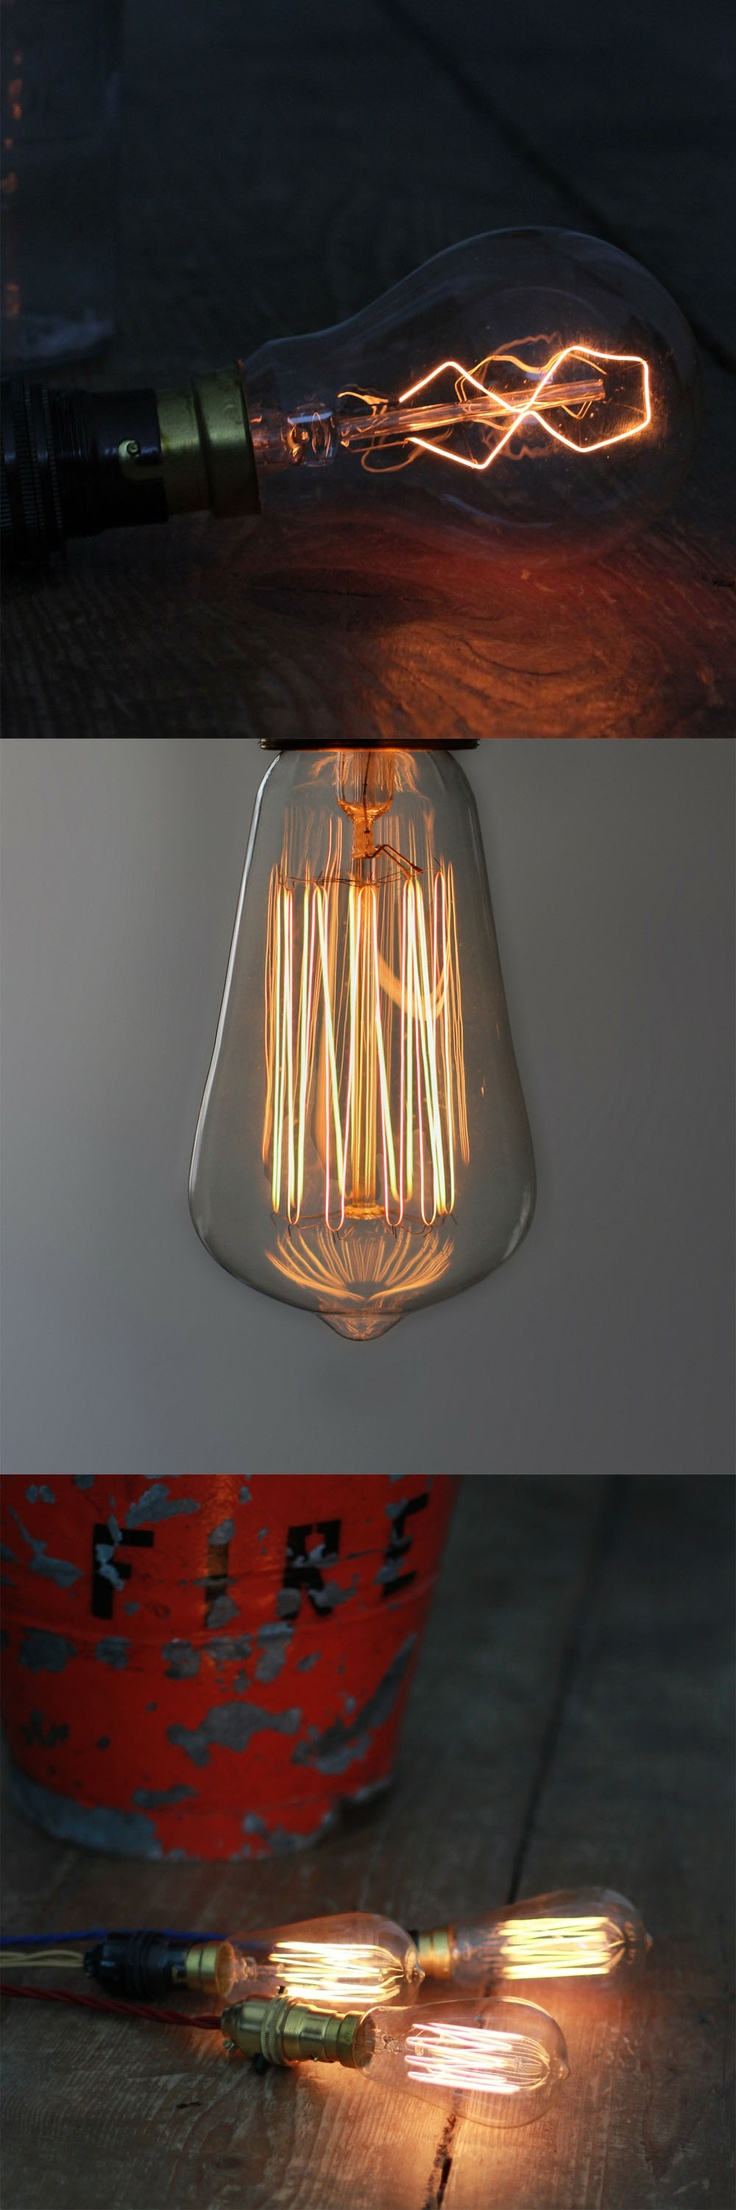 8-Point Filament / Small 19 Anchor Squirrel Cage Filament Bulb  By Hattie Hollins: Design Products, Ideas Sparkly, Hatti Hollin, Anchors Squirrels, Cages Filament, Squirrels Cages, Filament Bulbs, 19 Anchors